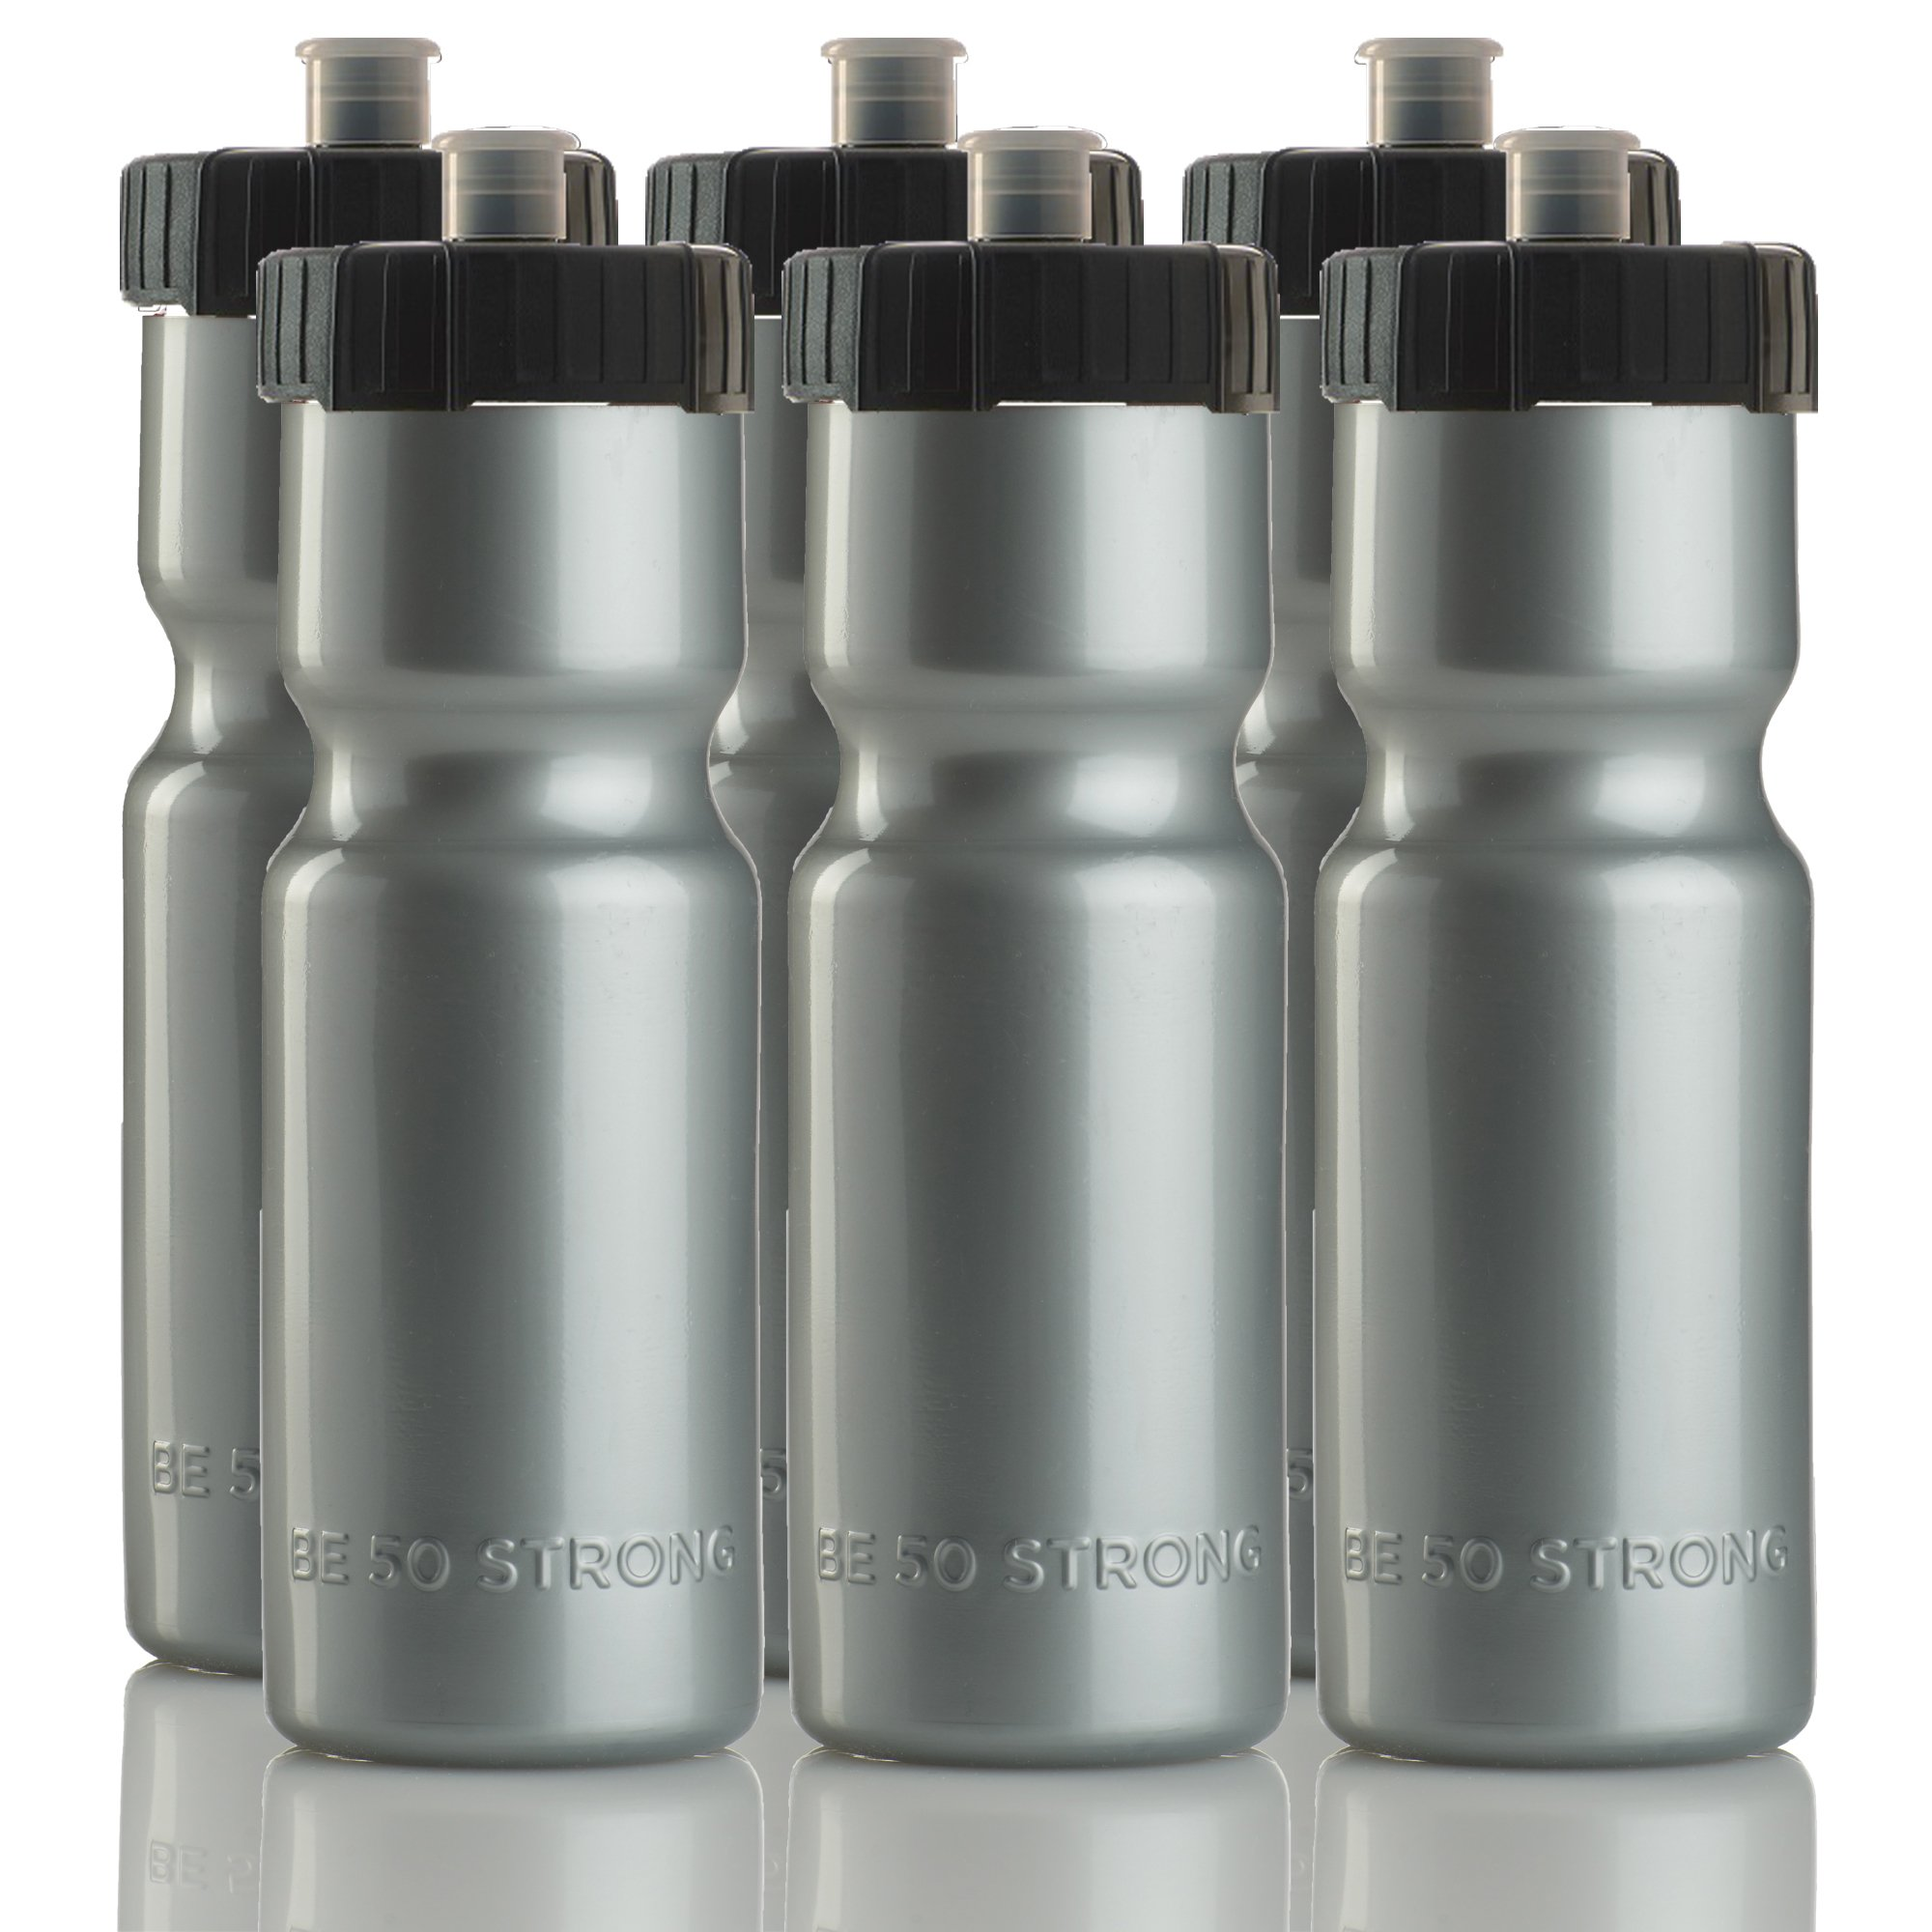 CDM product 50 Strong Sports Squeeze Water Bottles - Set of 6 - Team Pack – 22 oz. BPA Free Bottle Easy Open Push/Pull Cap – Made in USA - Multiple Colors Available big image